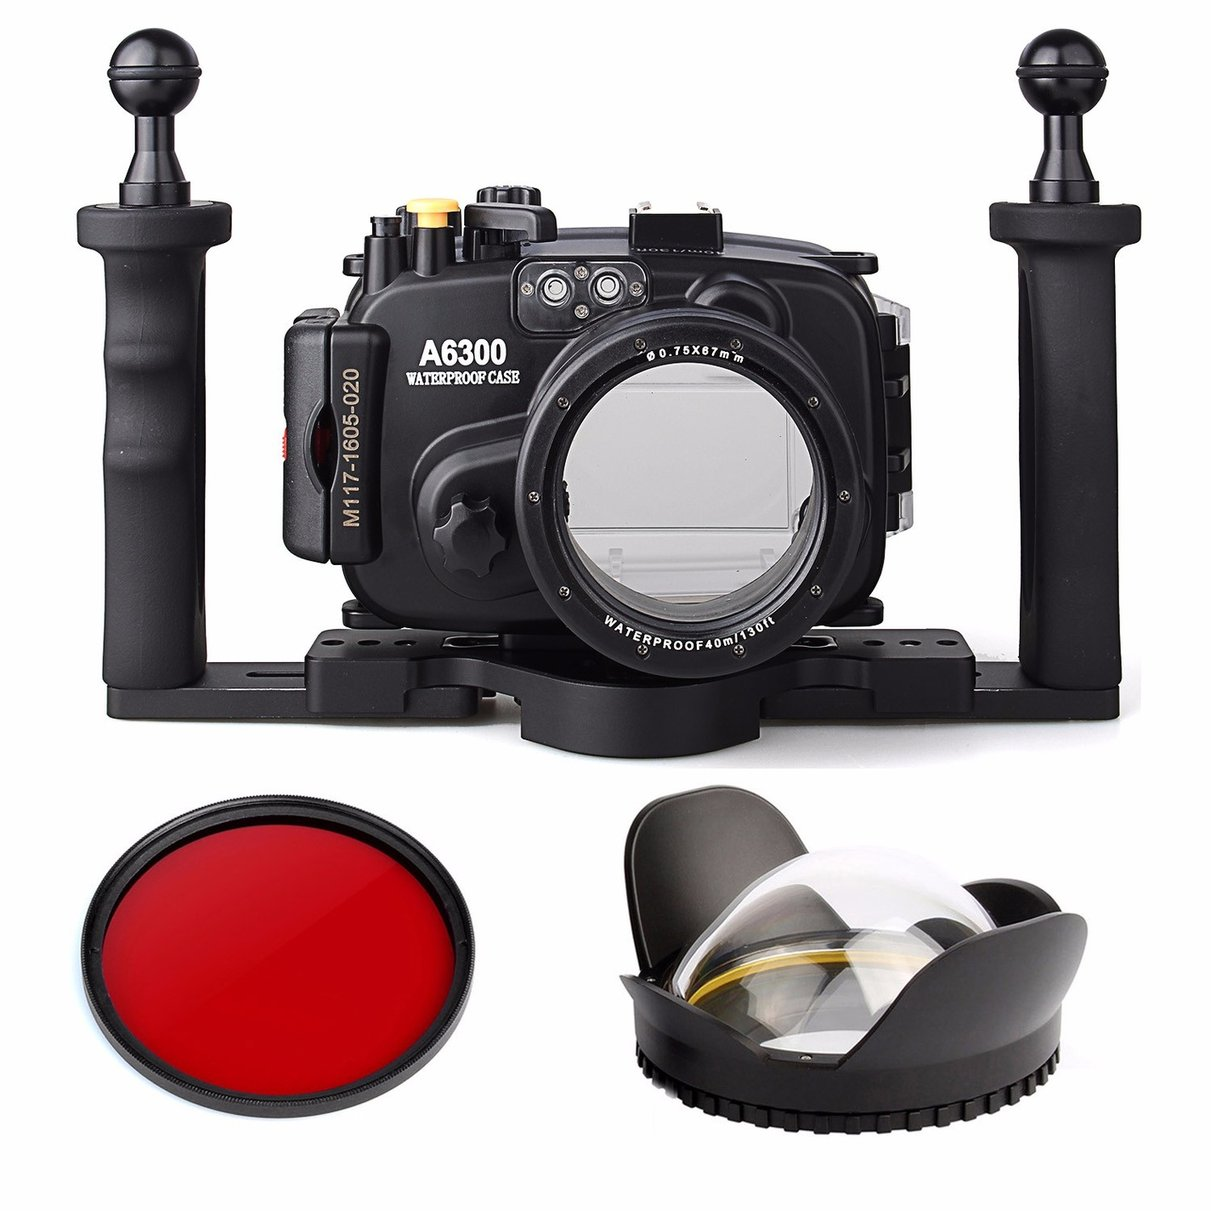 40m/130ft Waterproof Underwater Camera Housing Case for A6300 16-50mm Lens + Tray + Red Filter + 67mm Round Fisheye